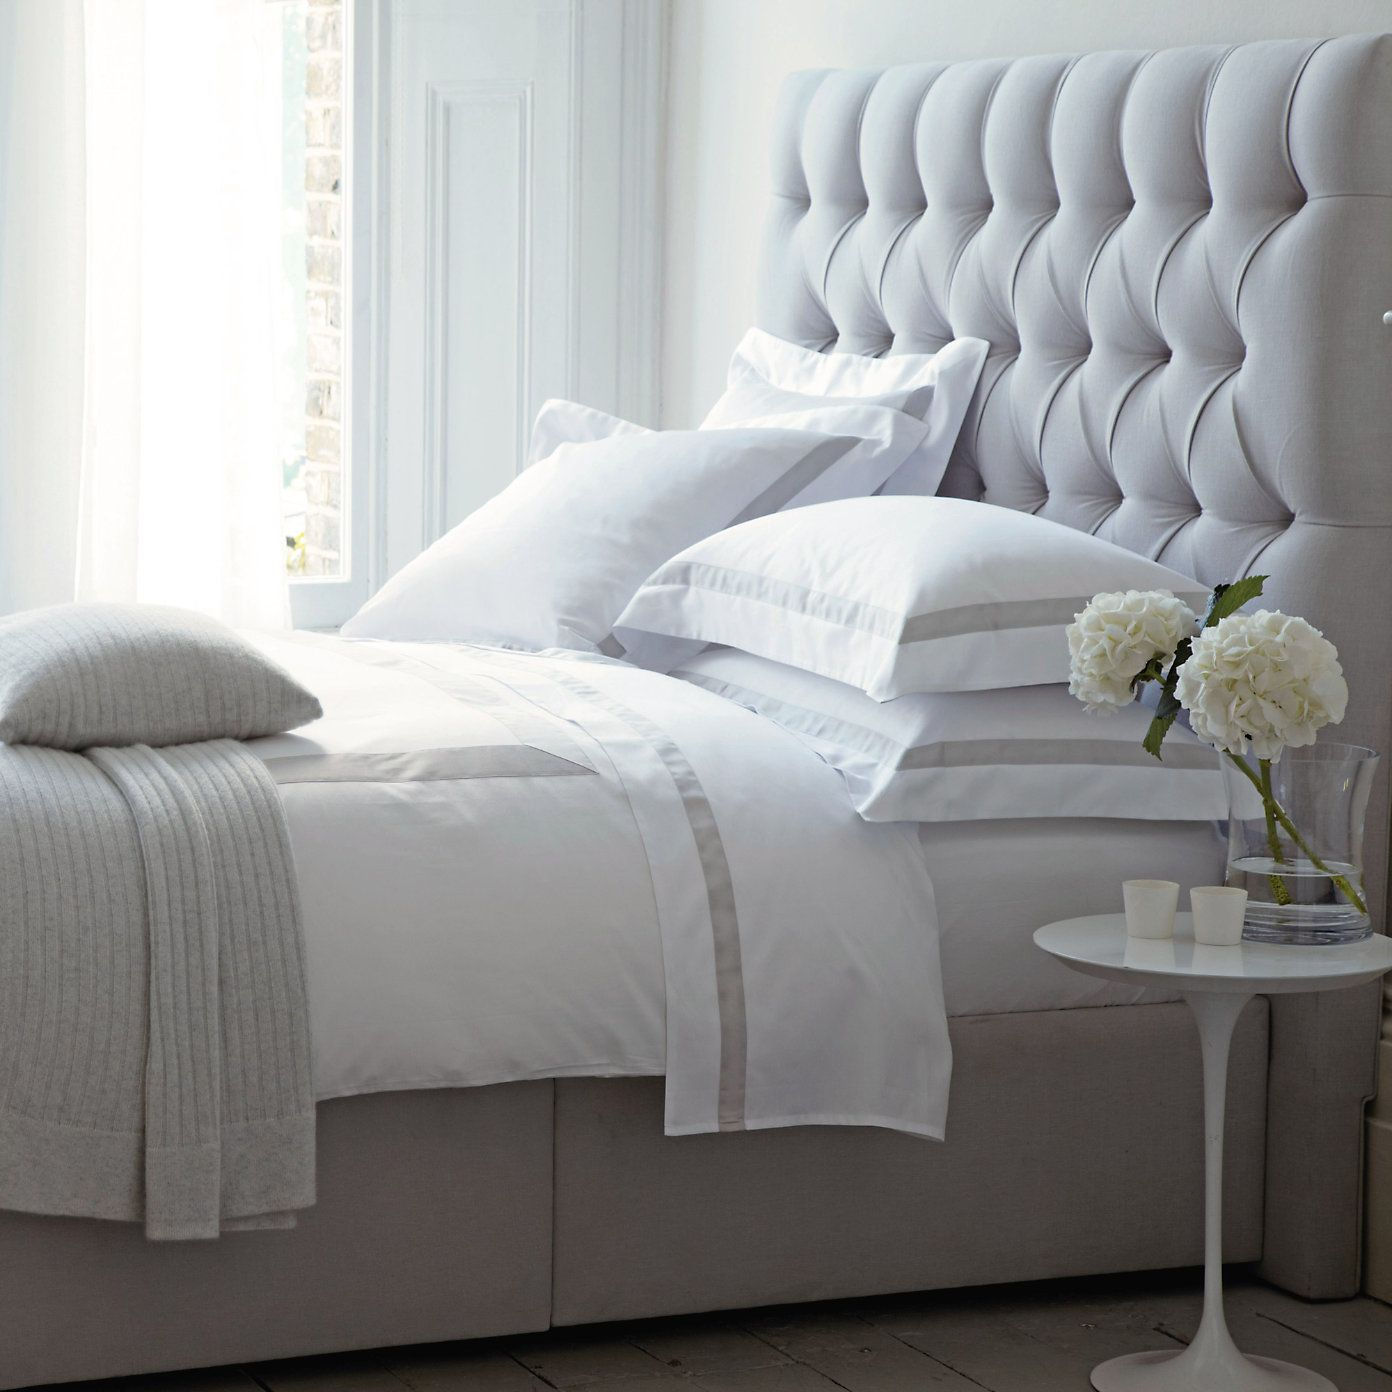 5 Bedroom Ideas For Autumn From The White Company: Richmond Bed From The White Company